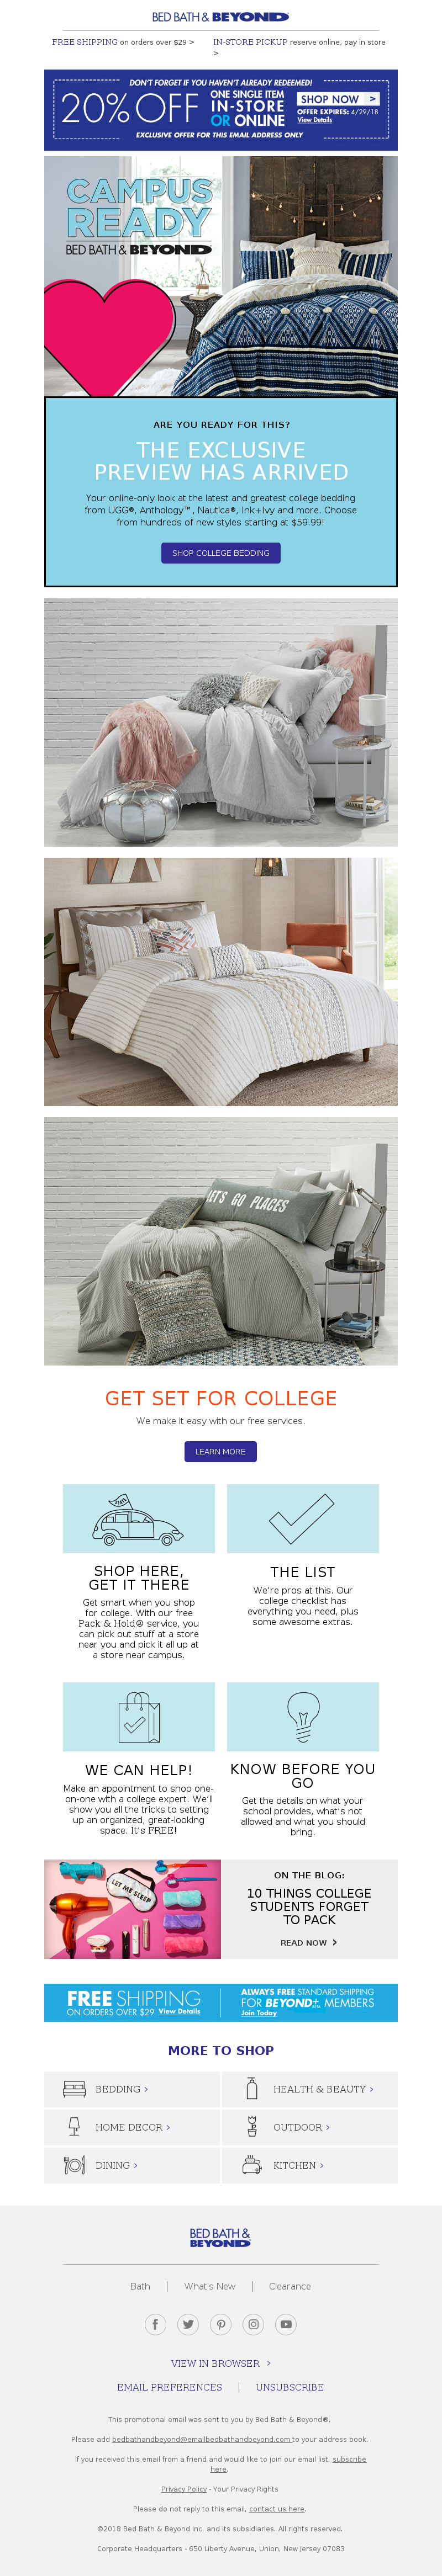 email example for back to school sent by Bed Bath & Beyond